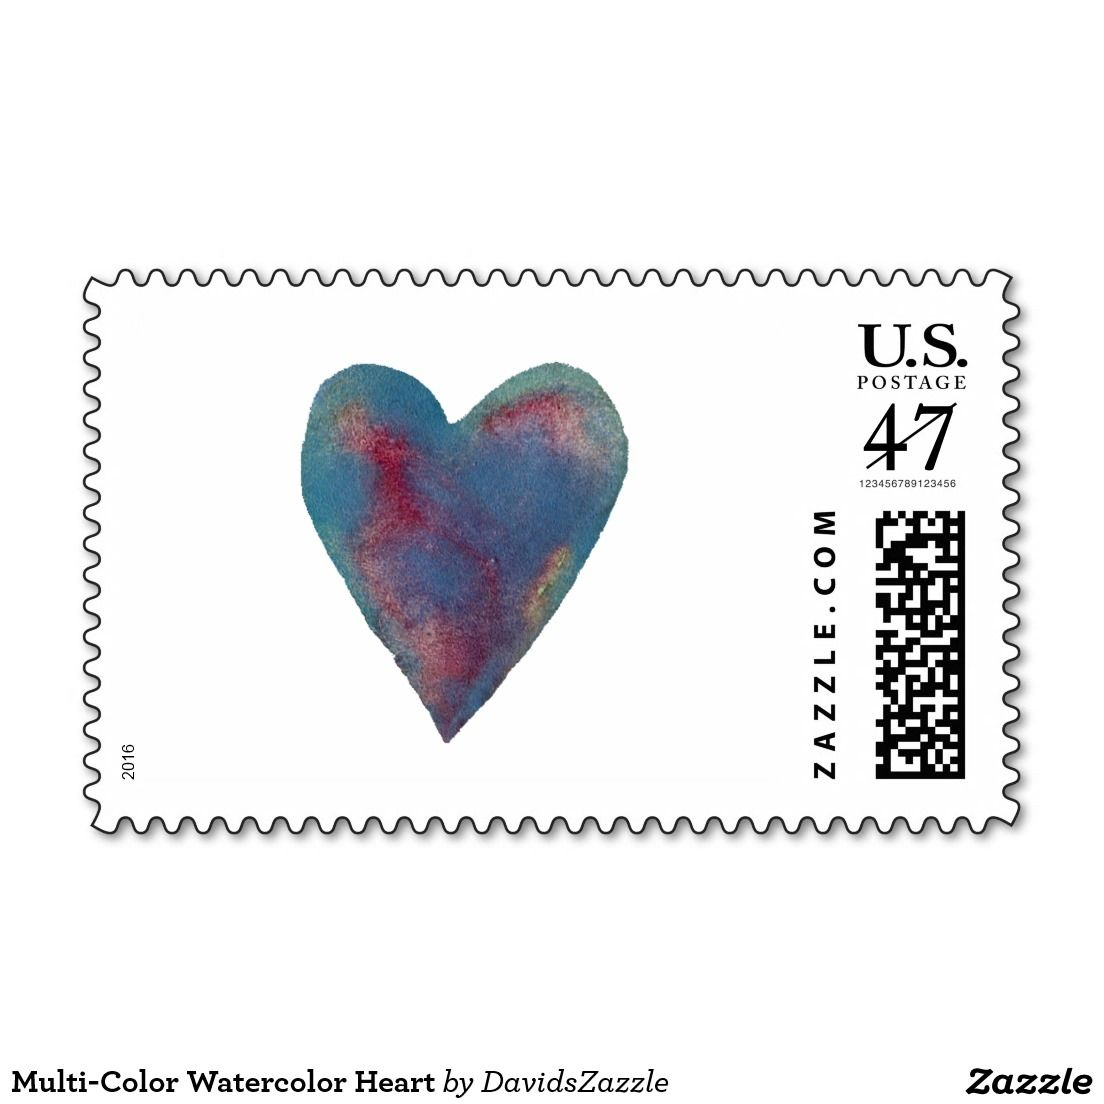 multi color watercolor heart postage stamp postage post mail mailing cost letter invitation greeting card send zazzle buy sale heart